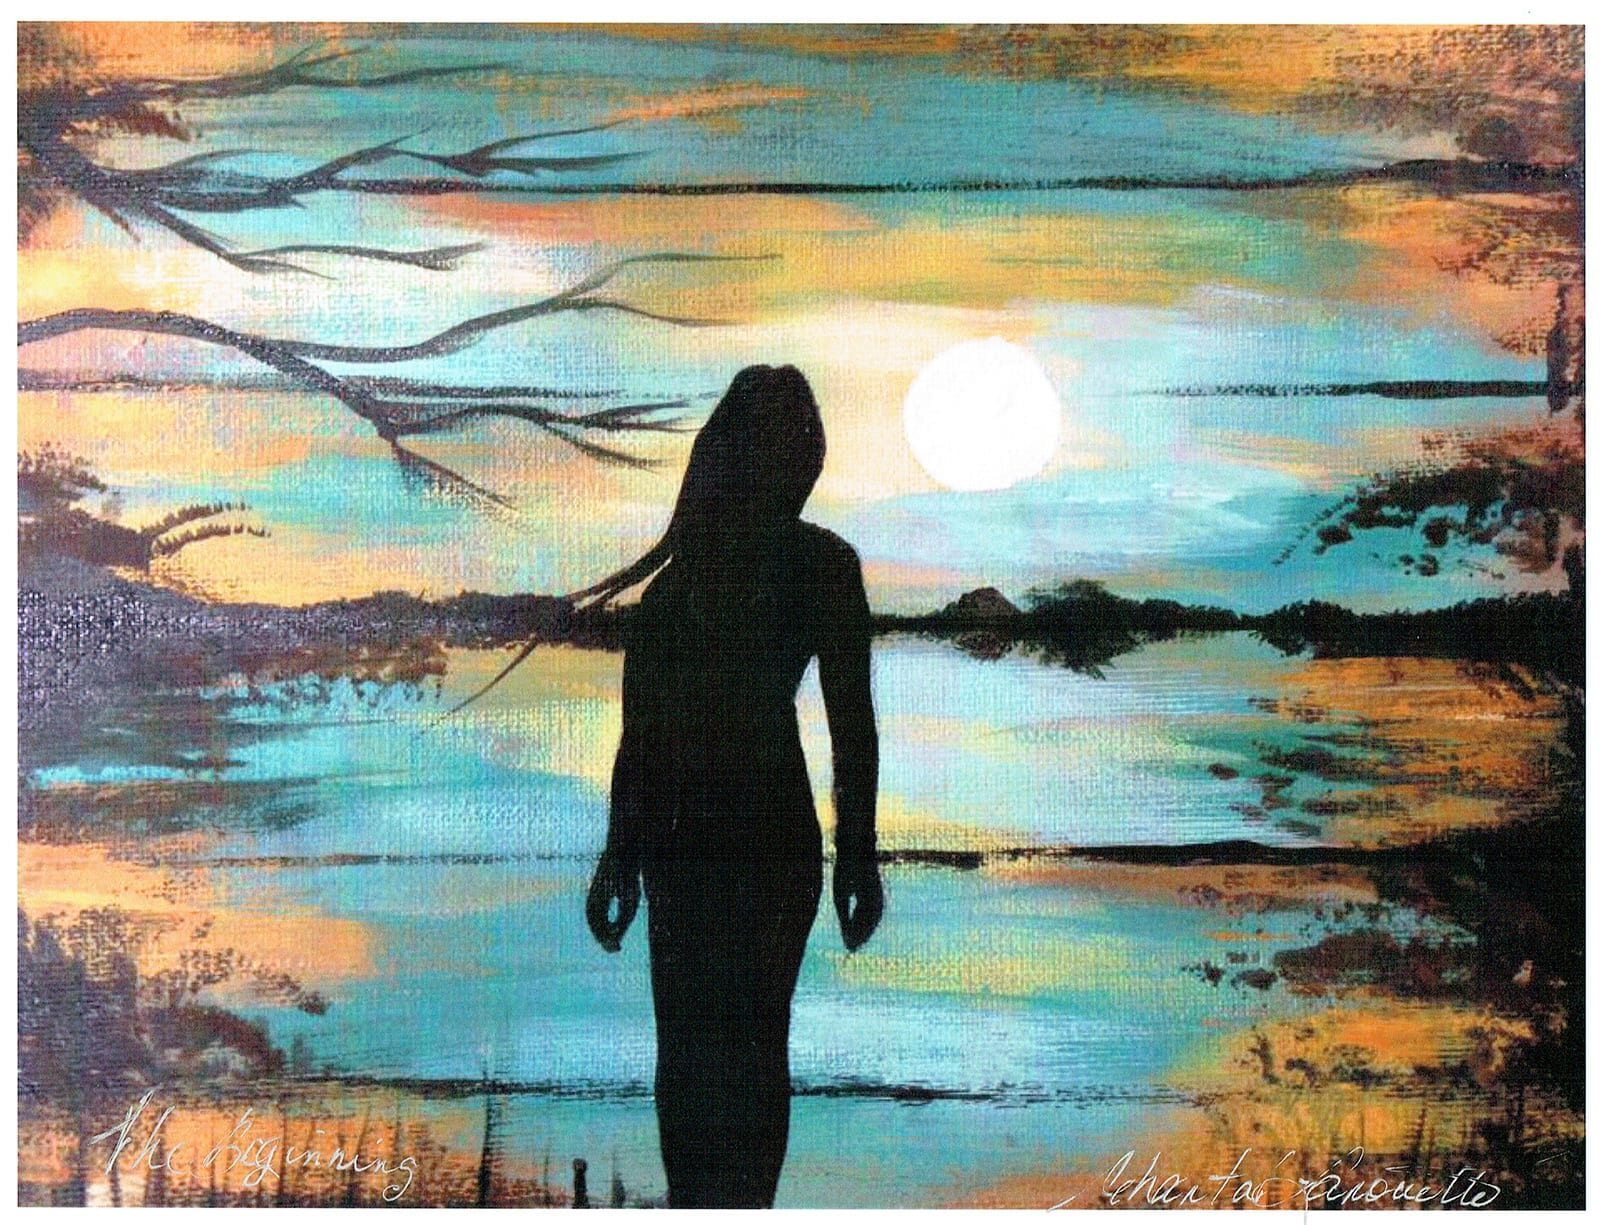 Indigenous artist, native artist, native american art, first nations art, Chantal Lanouette, pass the feather, IndigenARTSY, Indigenous arts collective of canada